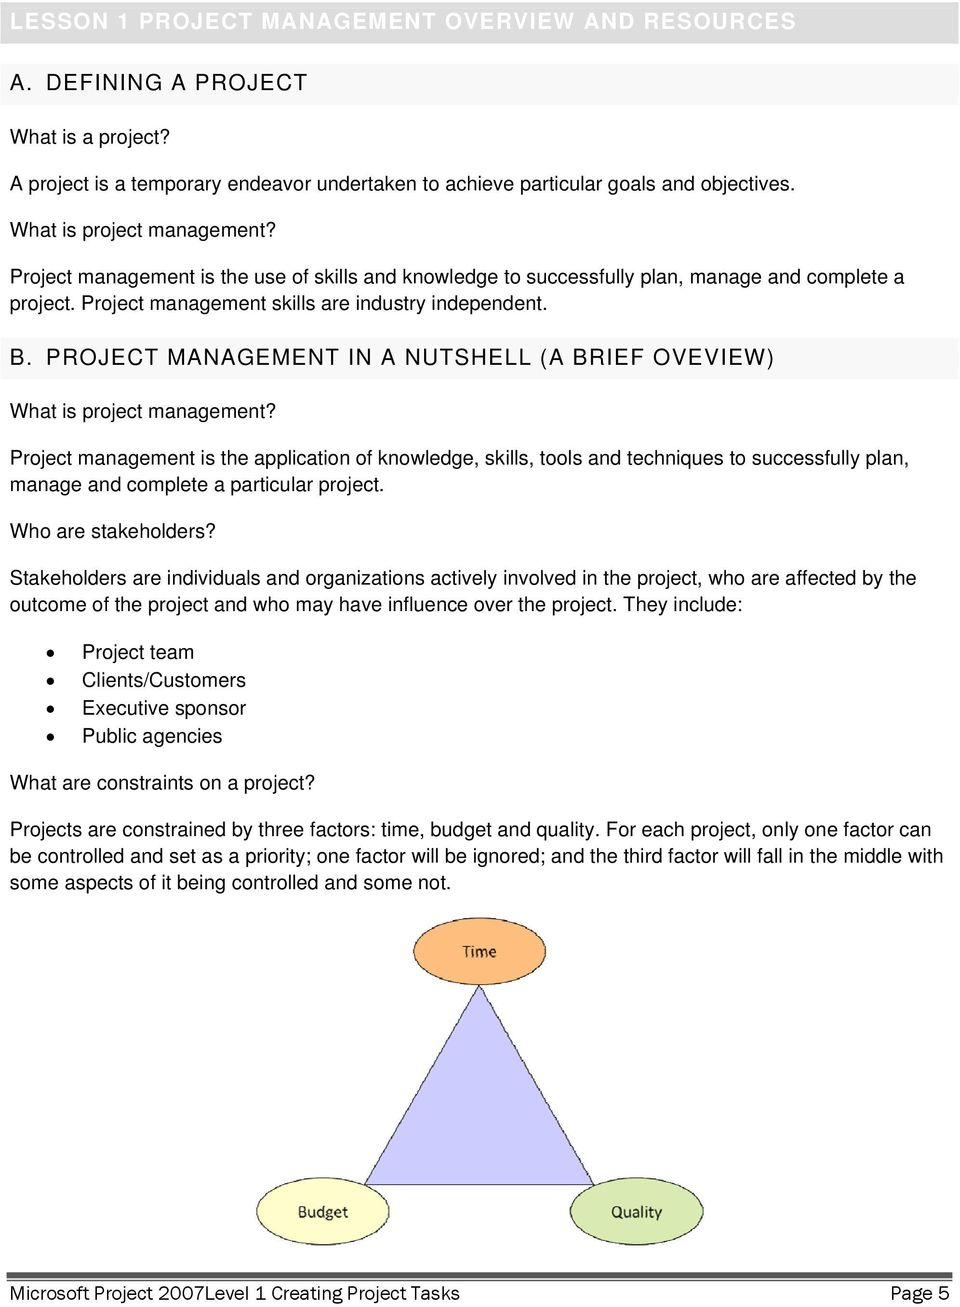 PROJECT MANAGEMENT IN A NUTSHELL (A BRIEF OVEVIEW) What is project management?